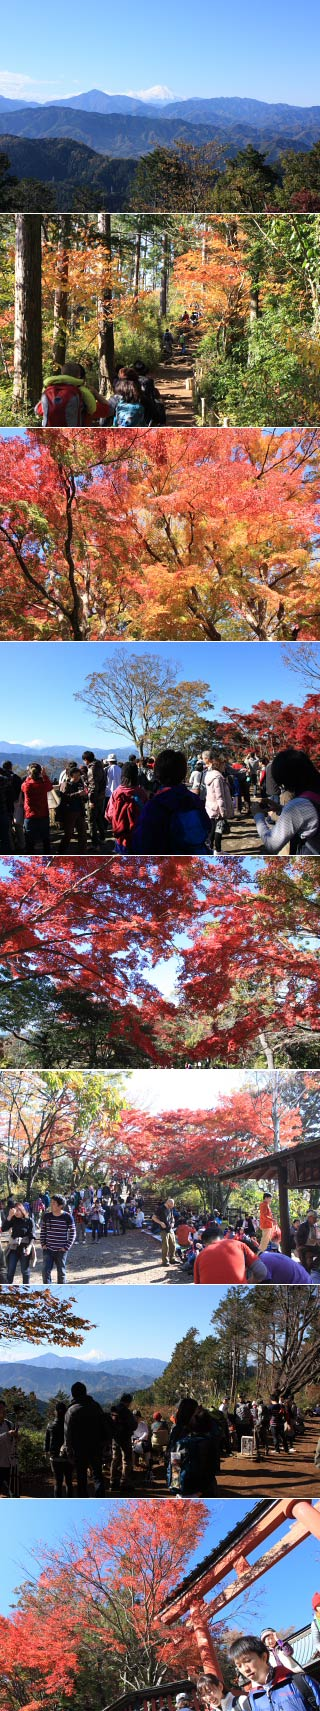 Koyo of Mt. Takao